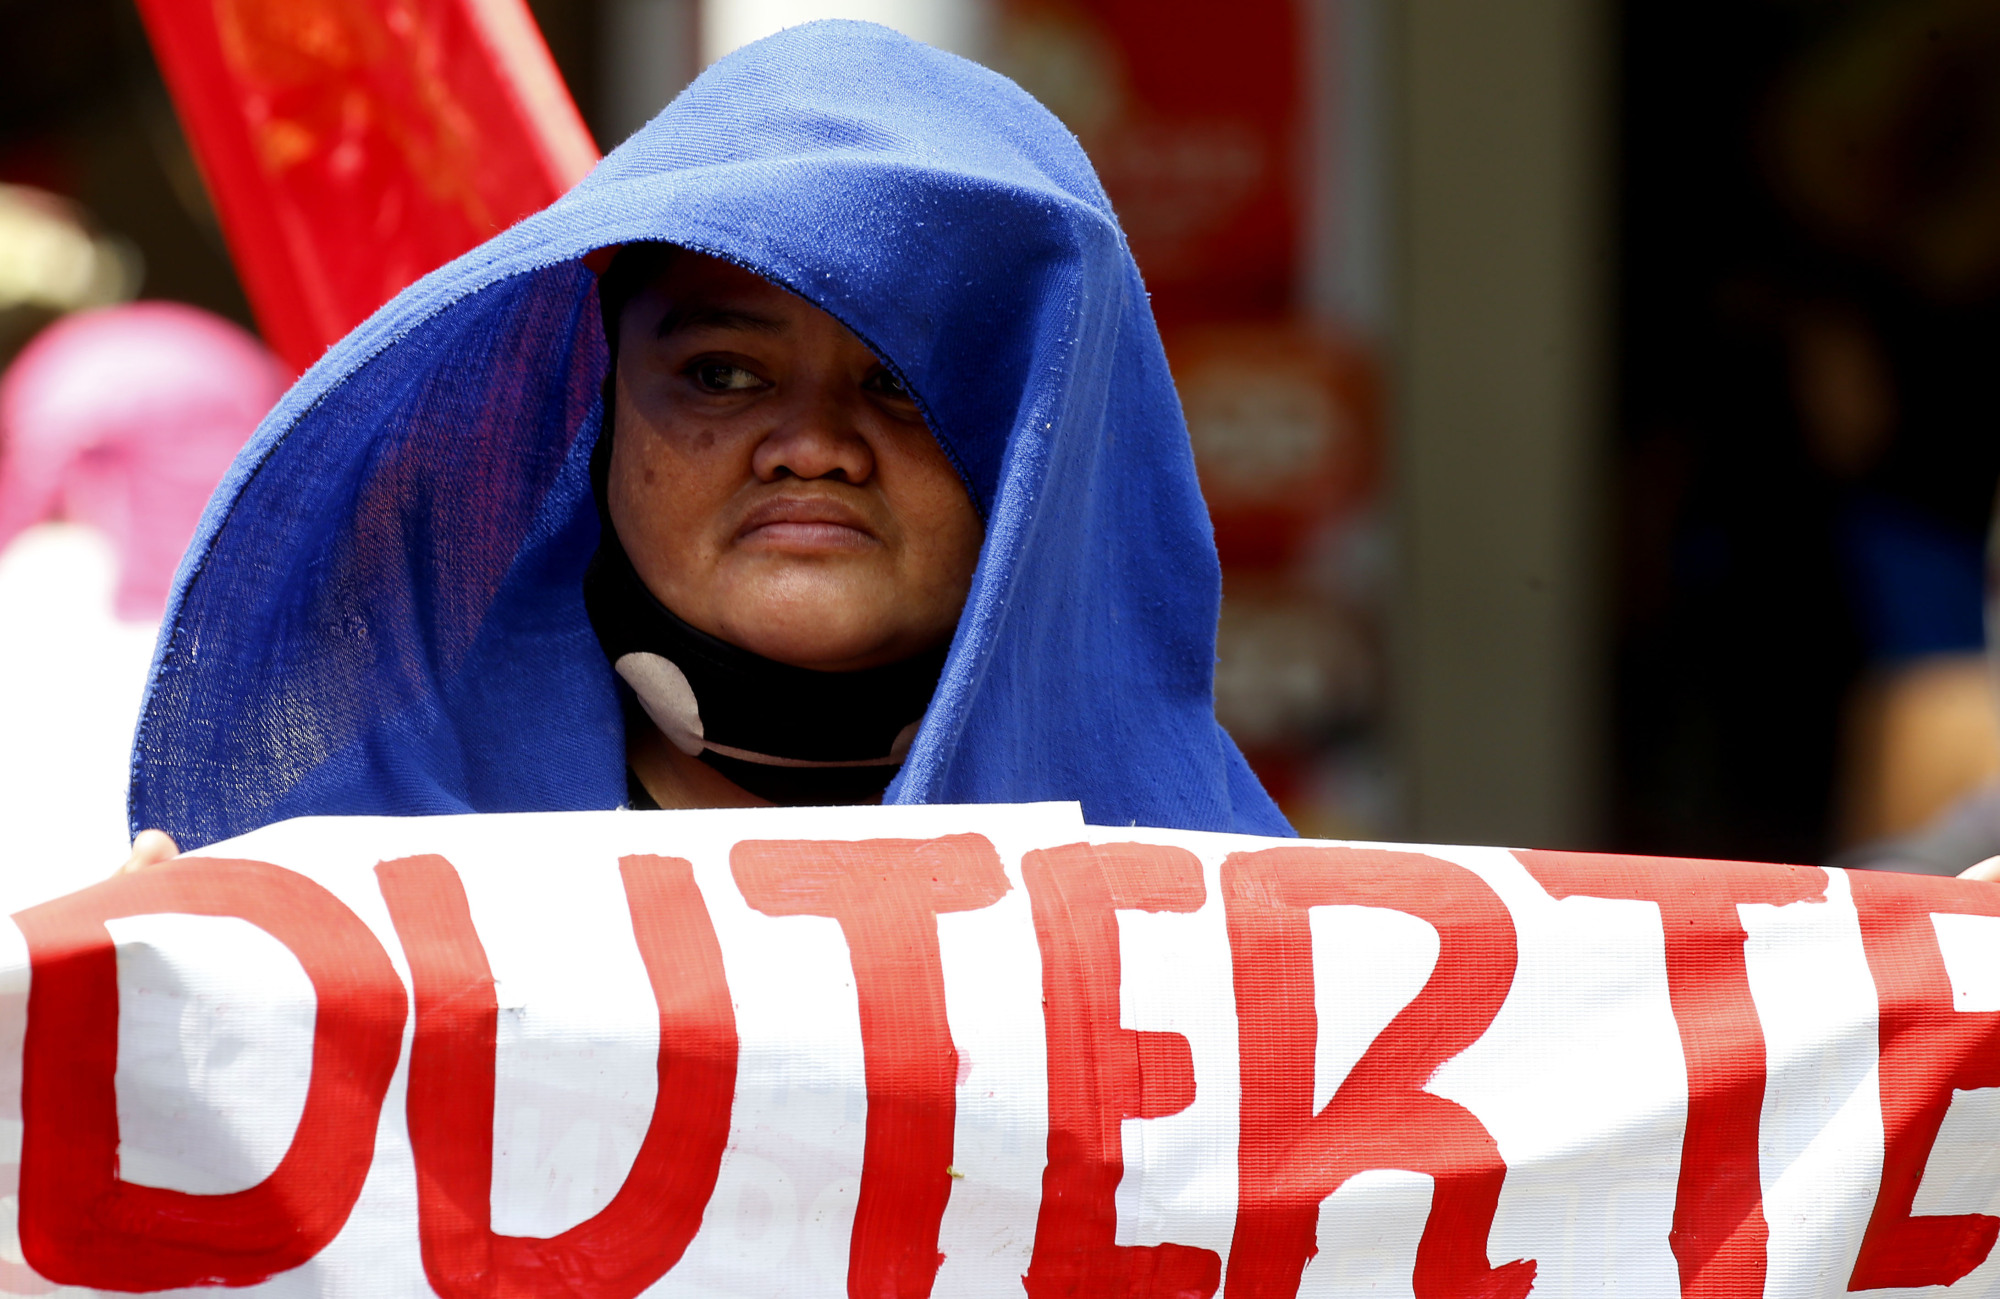 A protester displays a sign during a rally near the presidential palace in Manila on Friday to call for the impeachment of President Rodrigo Duterte. | AP